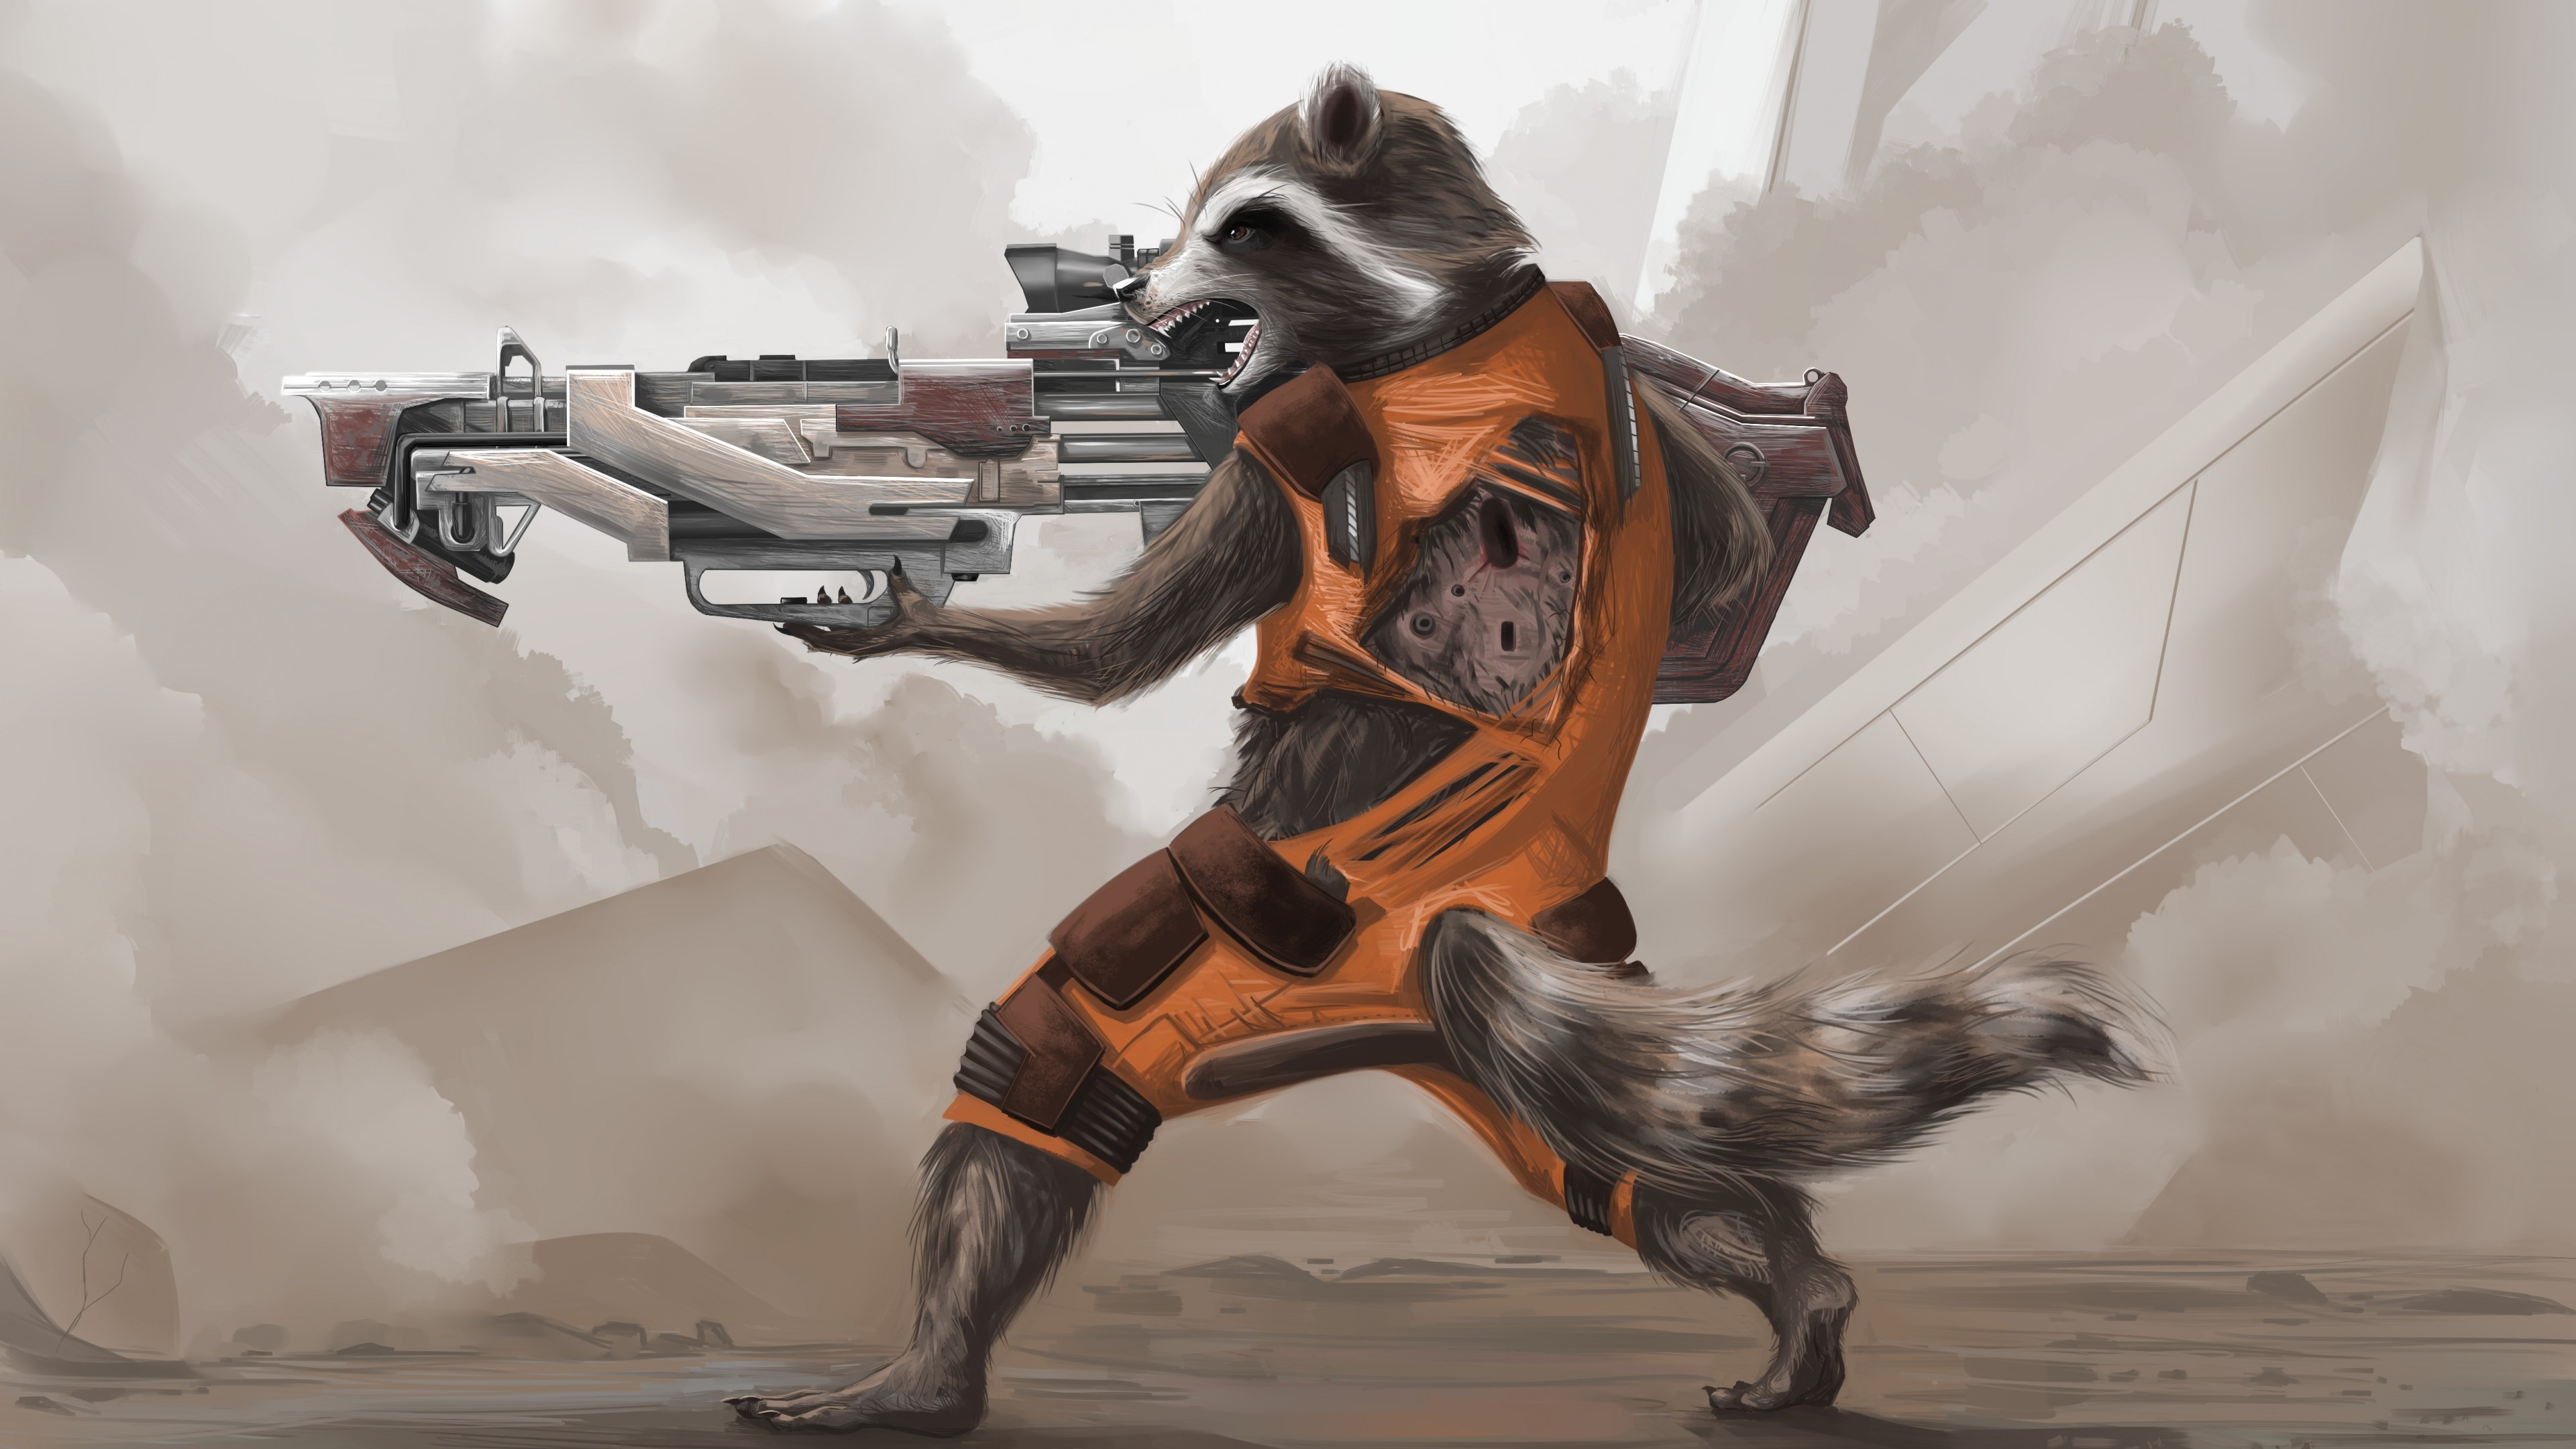 Wallpaper Rocket Raccoon of Guardians of the Galaxy